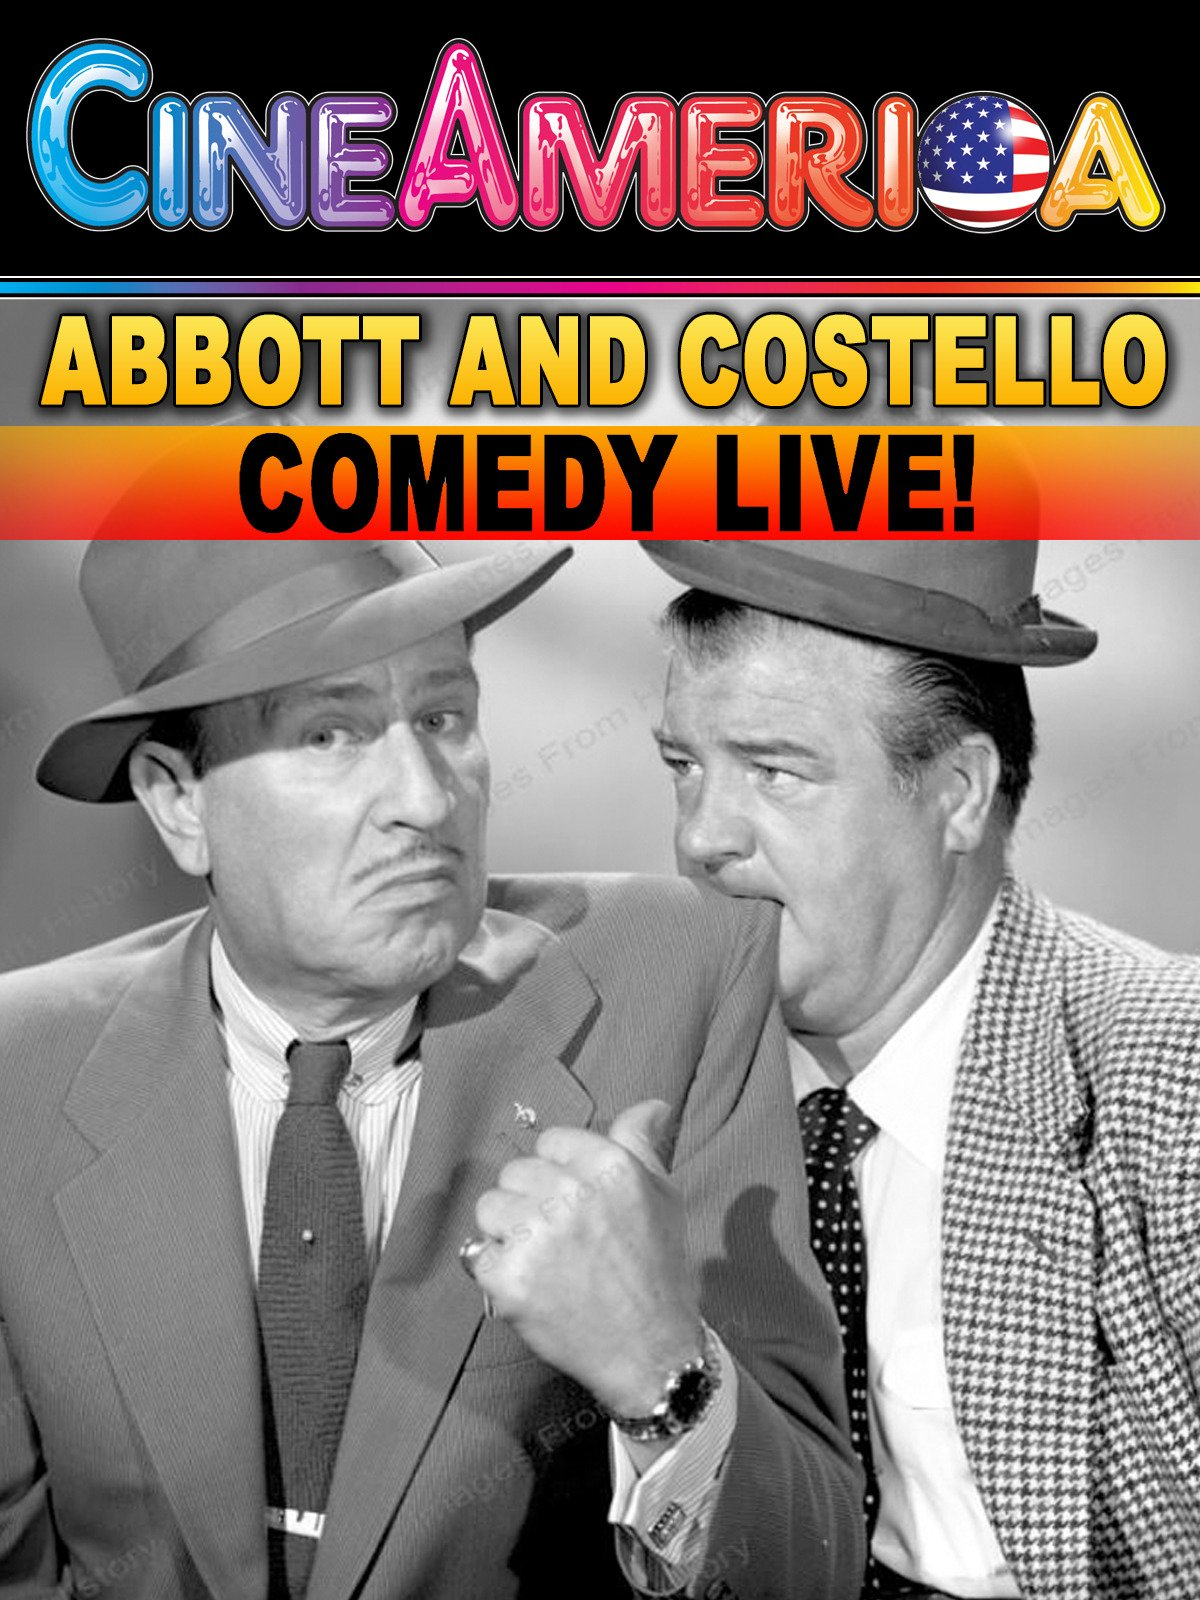 Abbott and Costello Comedy Live!